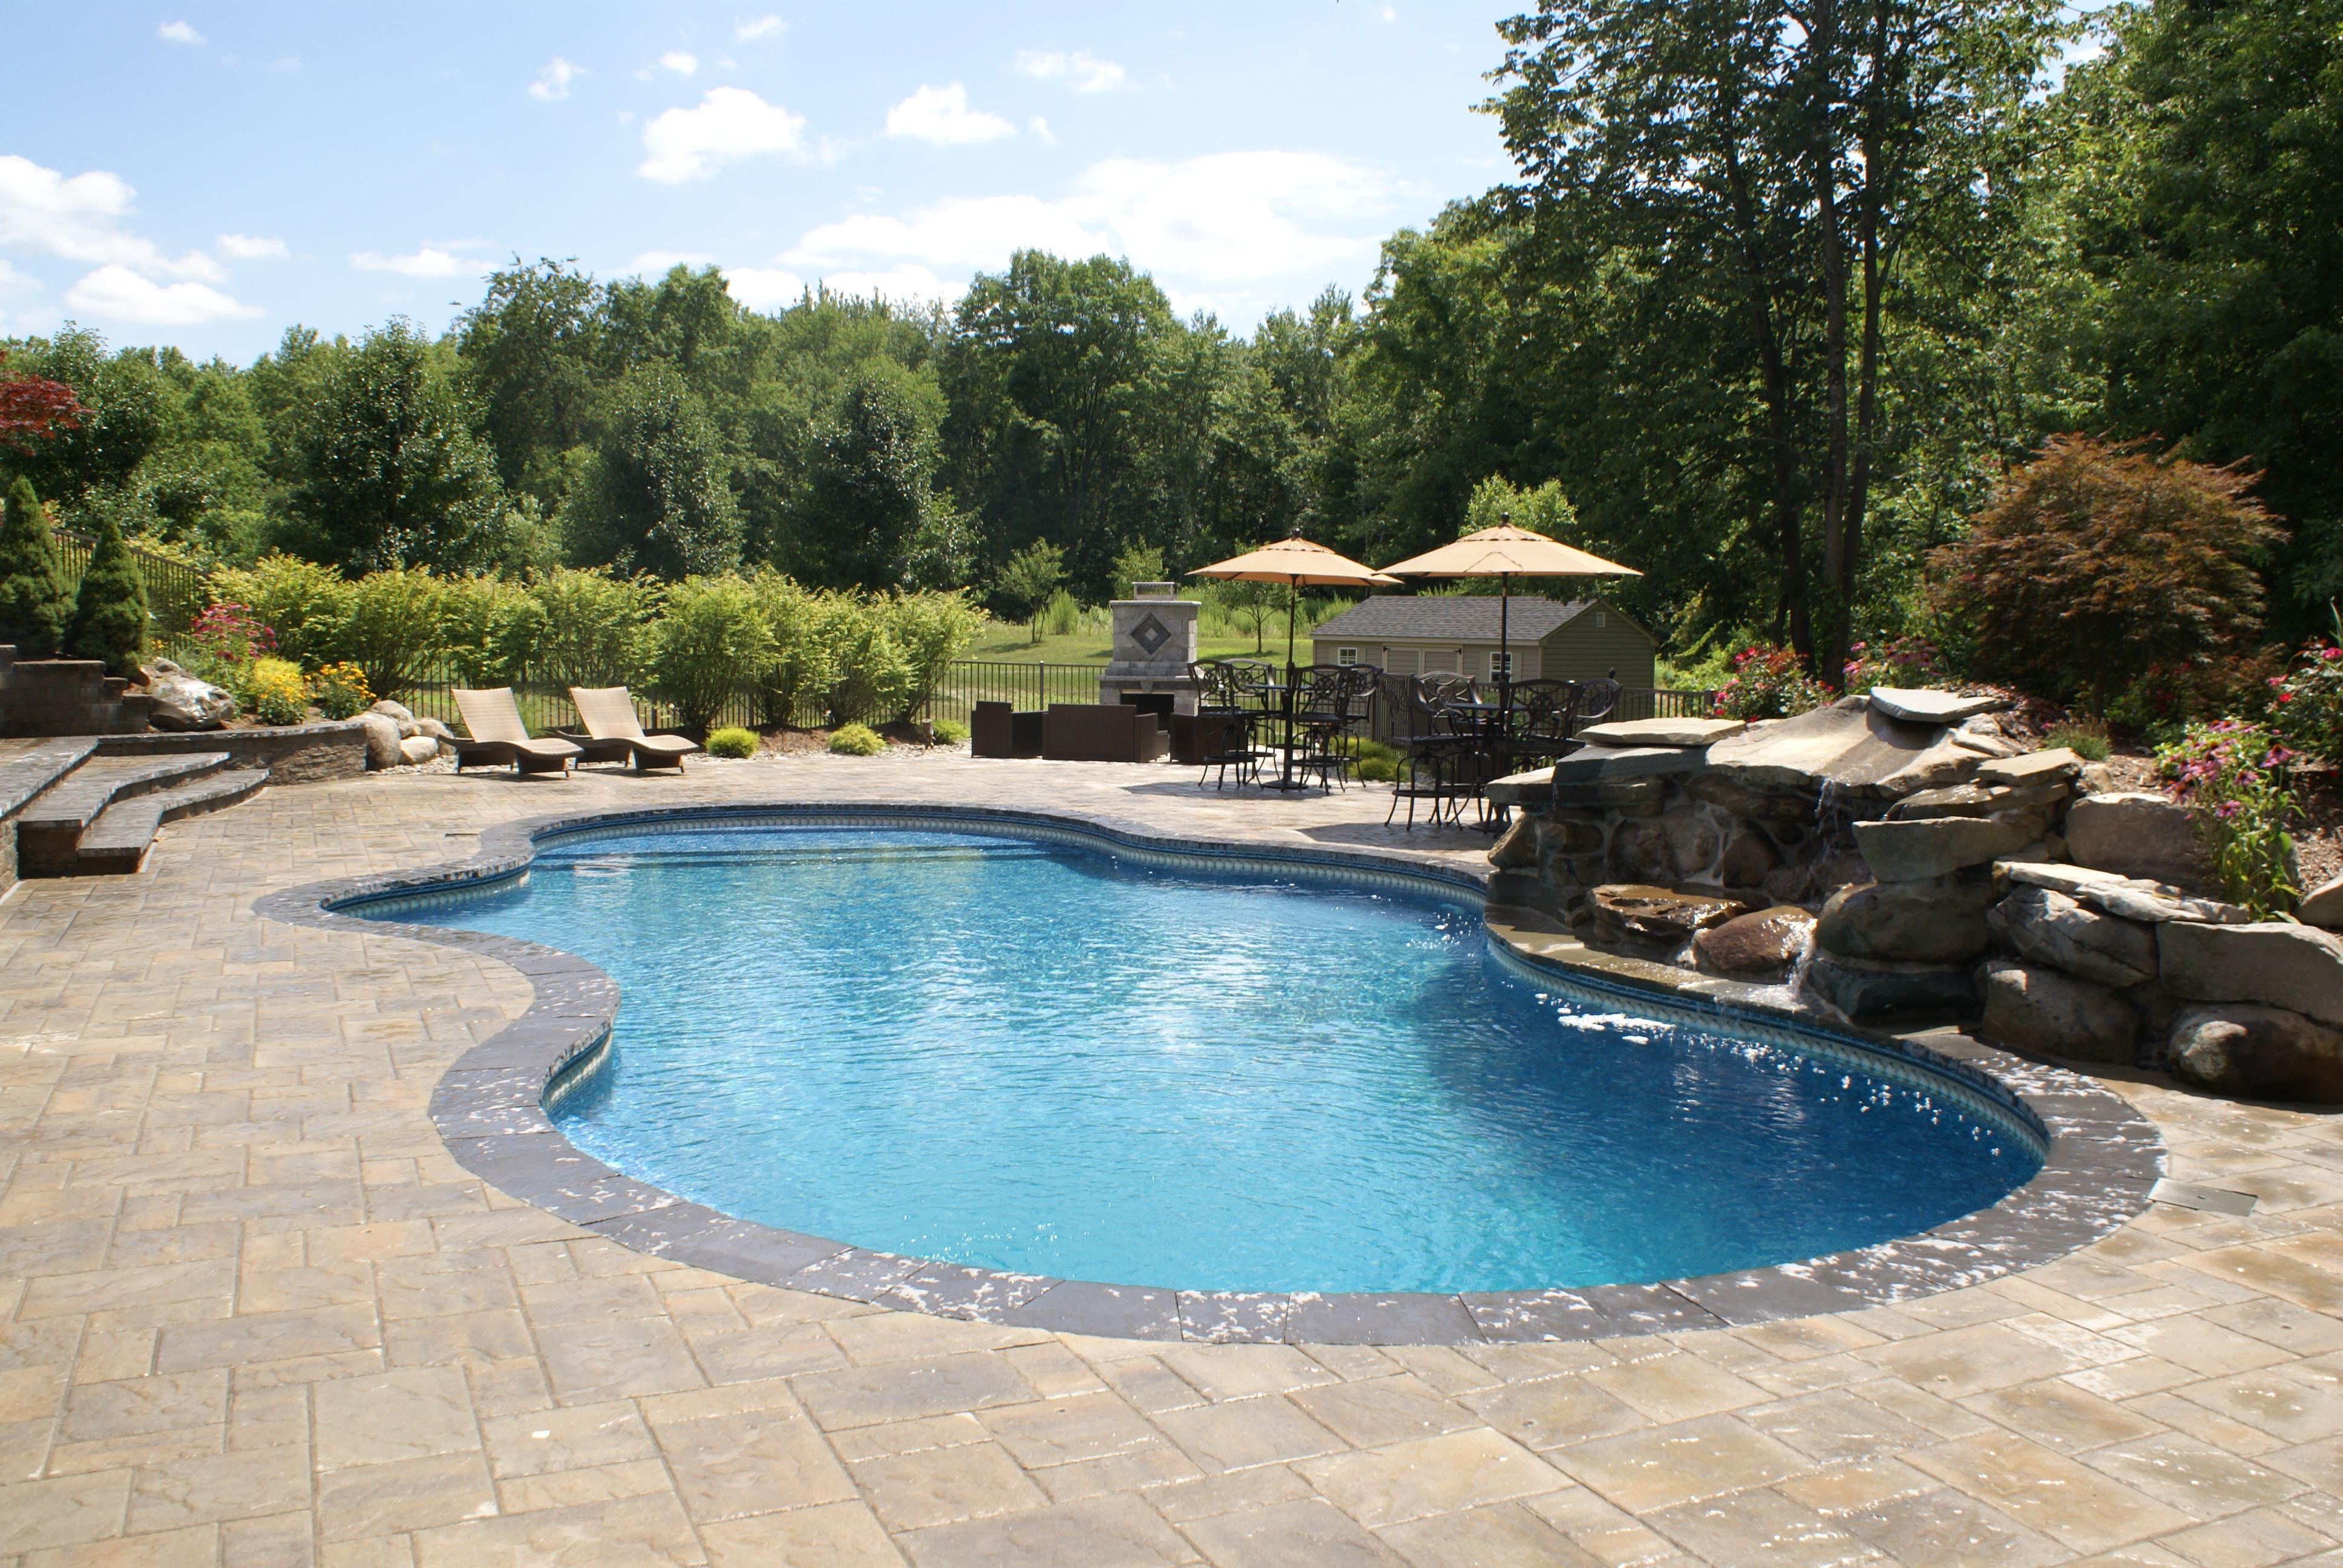 Lagoon Swimming Pool Designs: Freeform Lagoon Pool With Paver Patio, Hand Built